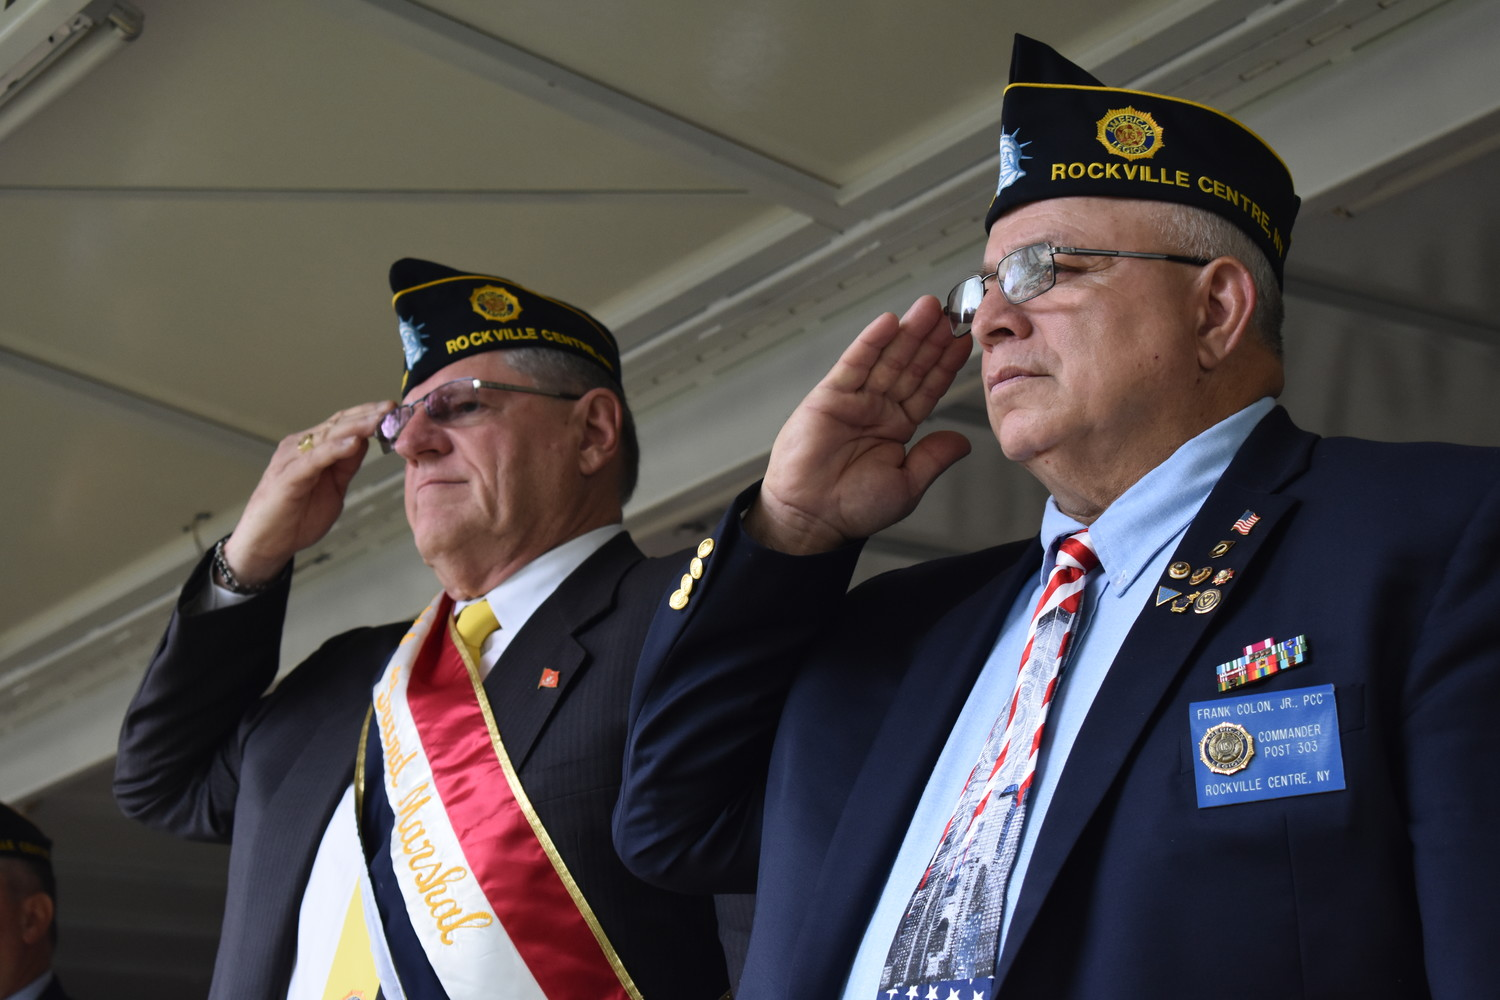 Walter Paruch, above left, grand marshal of Rockville Centre's Memorial Day Parade, and Frank Colon Jr., commander of American Legion Post 303, paid tribute to fallen soldiers.